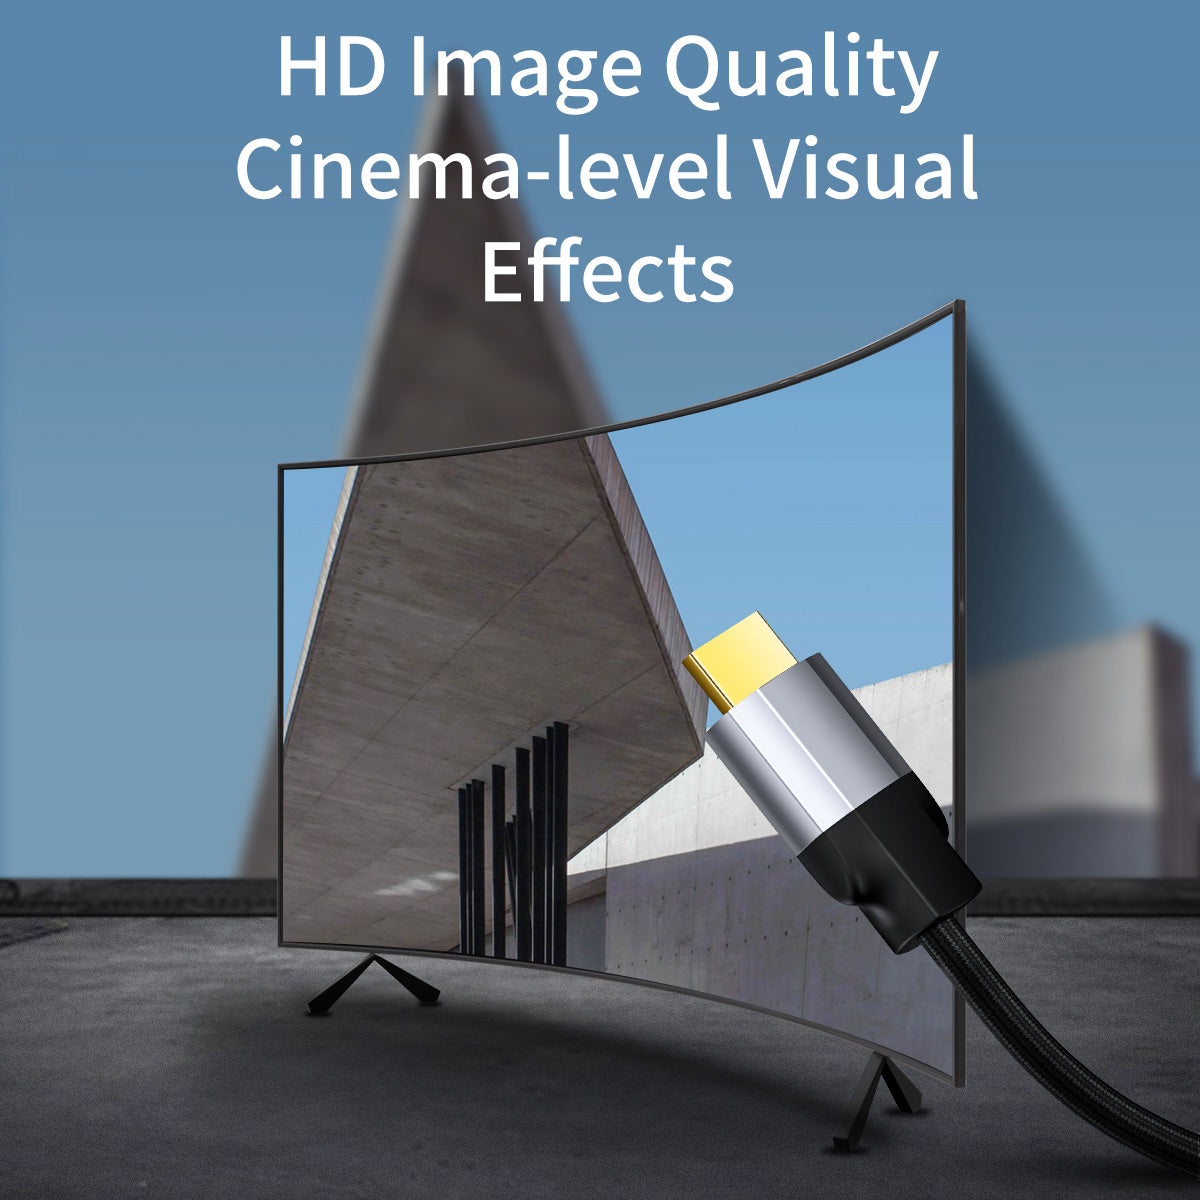 Baseus_4K_HDMI_to_DVI_Bidirectional_top_quality_SA905O7E45IK.jpg